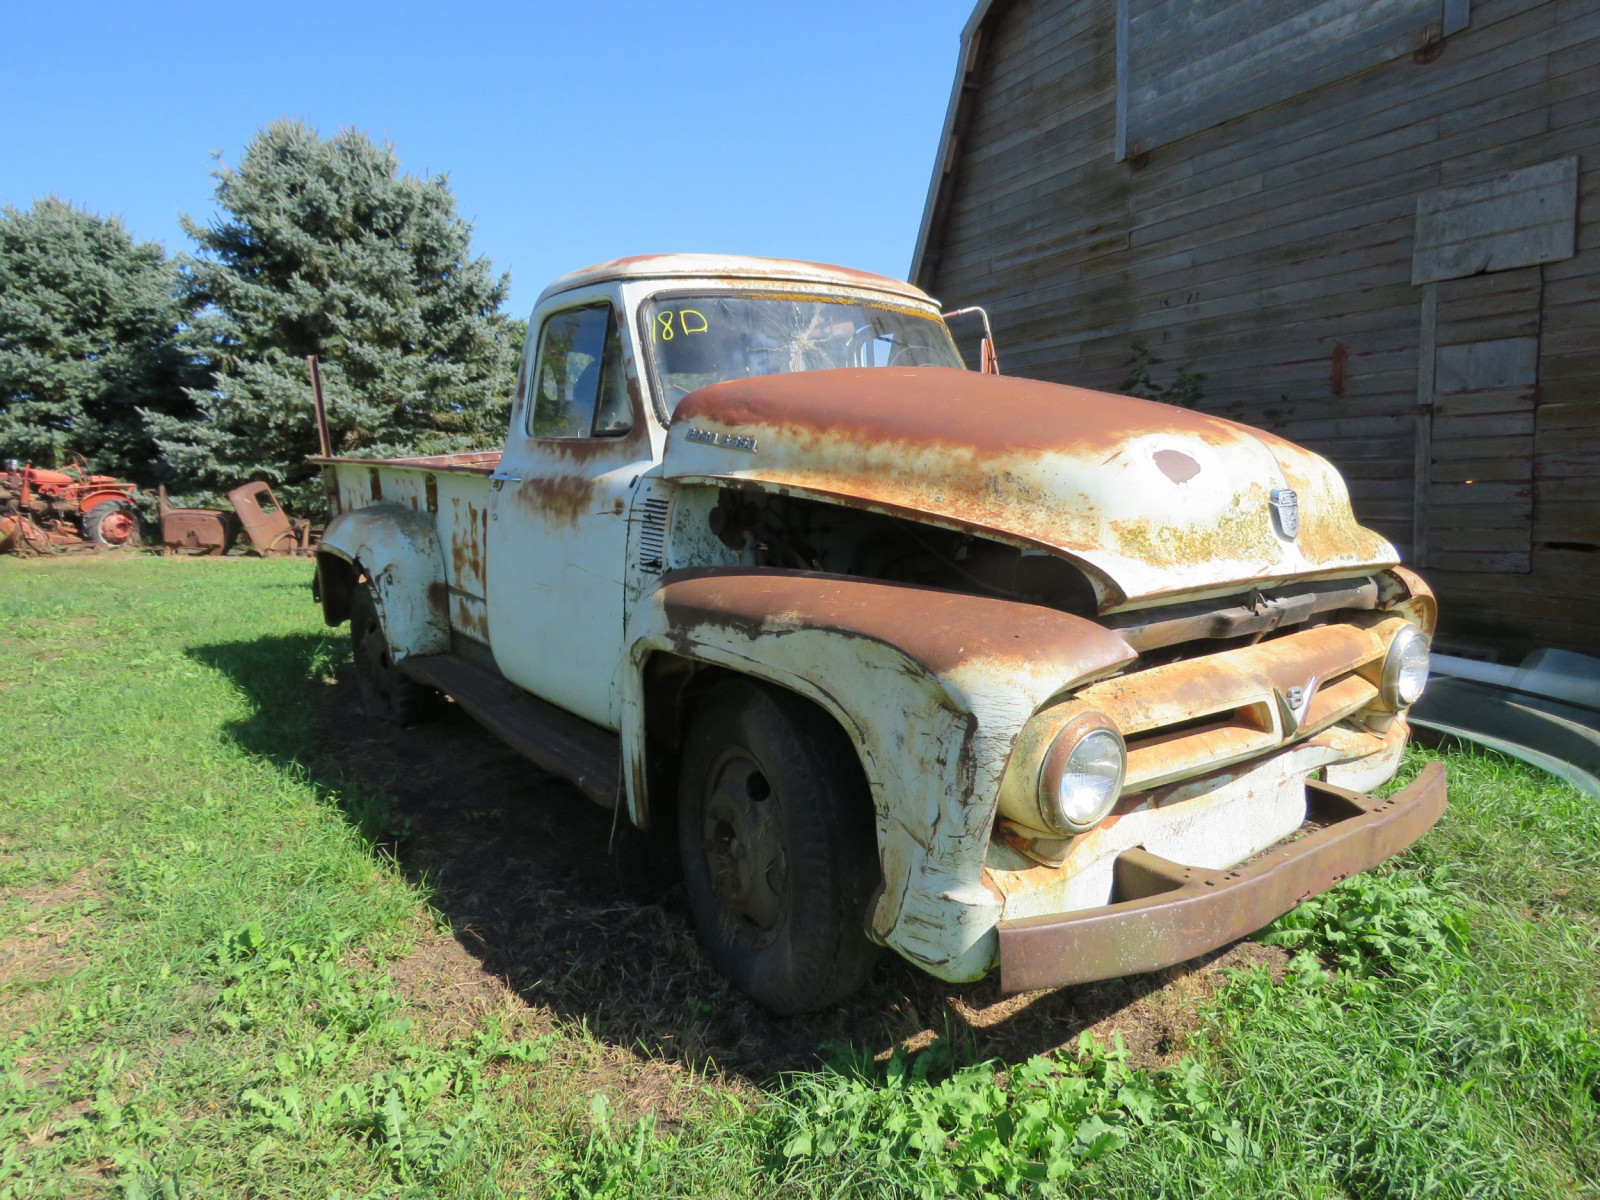 1955 Ford F350 1 ton Pickup for Rod or Restore - Image 1